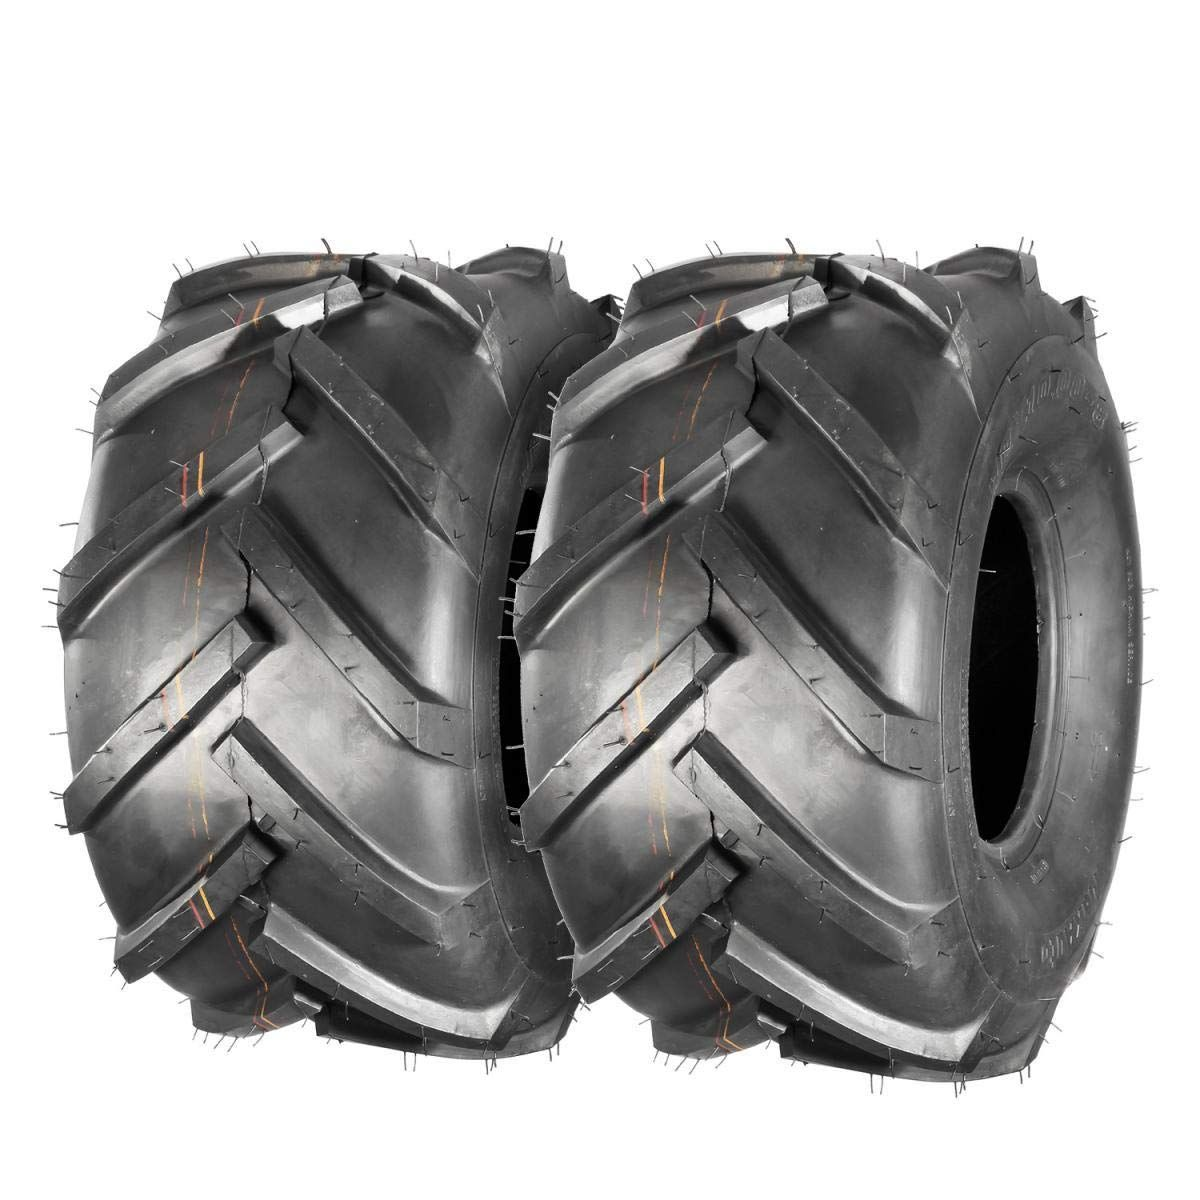 Maxauto 20x10 8 20x10 00 8 20x10x8 Super Lug Lawn And Garden Tire 4pr Set Of 2 Click On The Image Fo Lawn And Garden Automotive Tires Agriculture Tractor